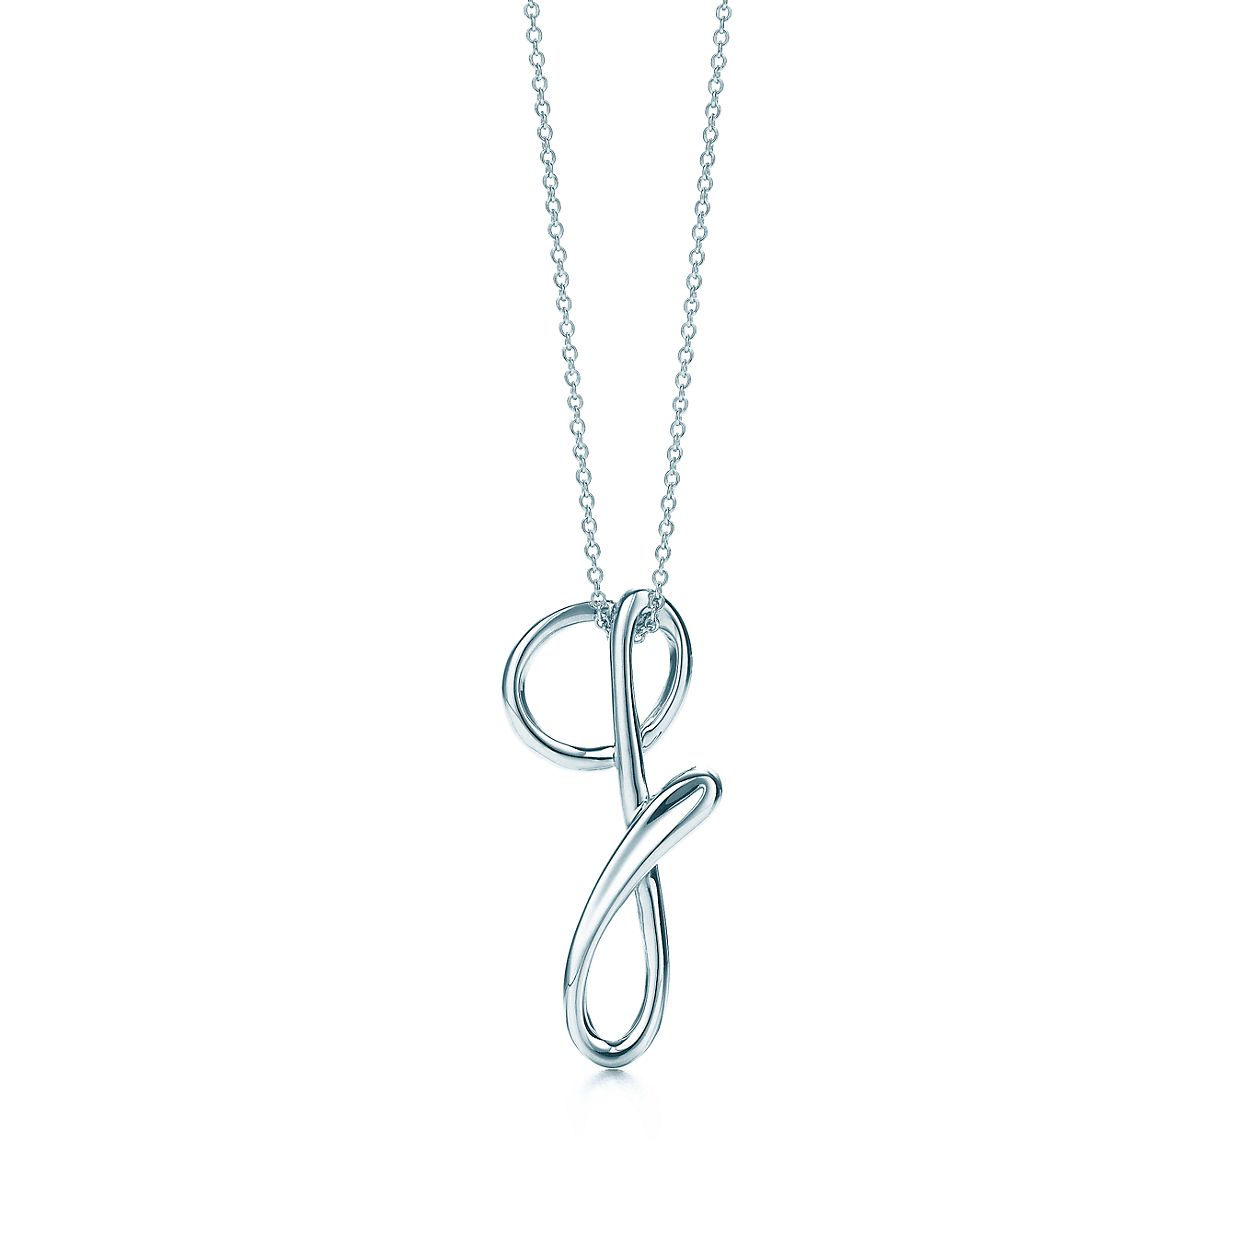 Tiffany Charms alphabet charm in sterling silver Letters A-Z available - Size Q Tiffany & Co. JwAzXVn